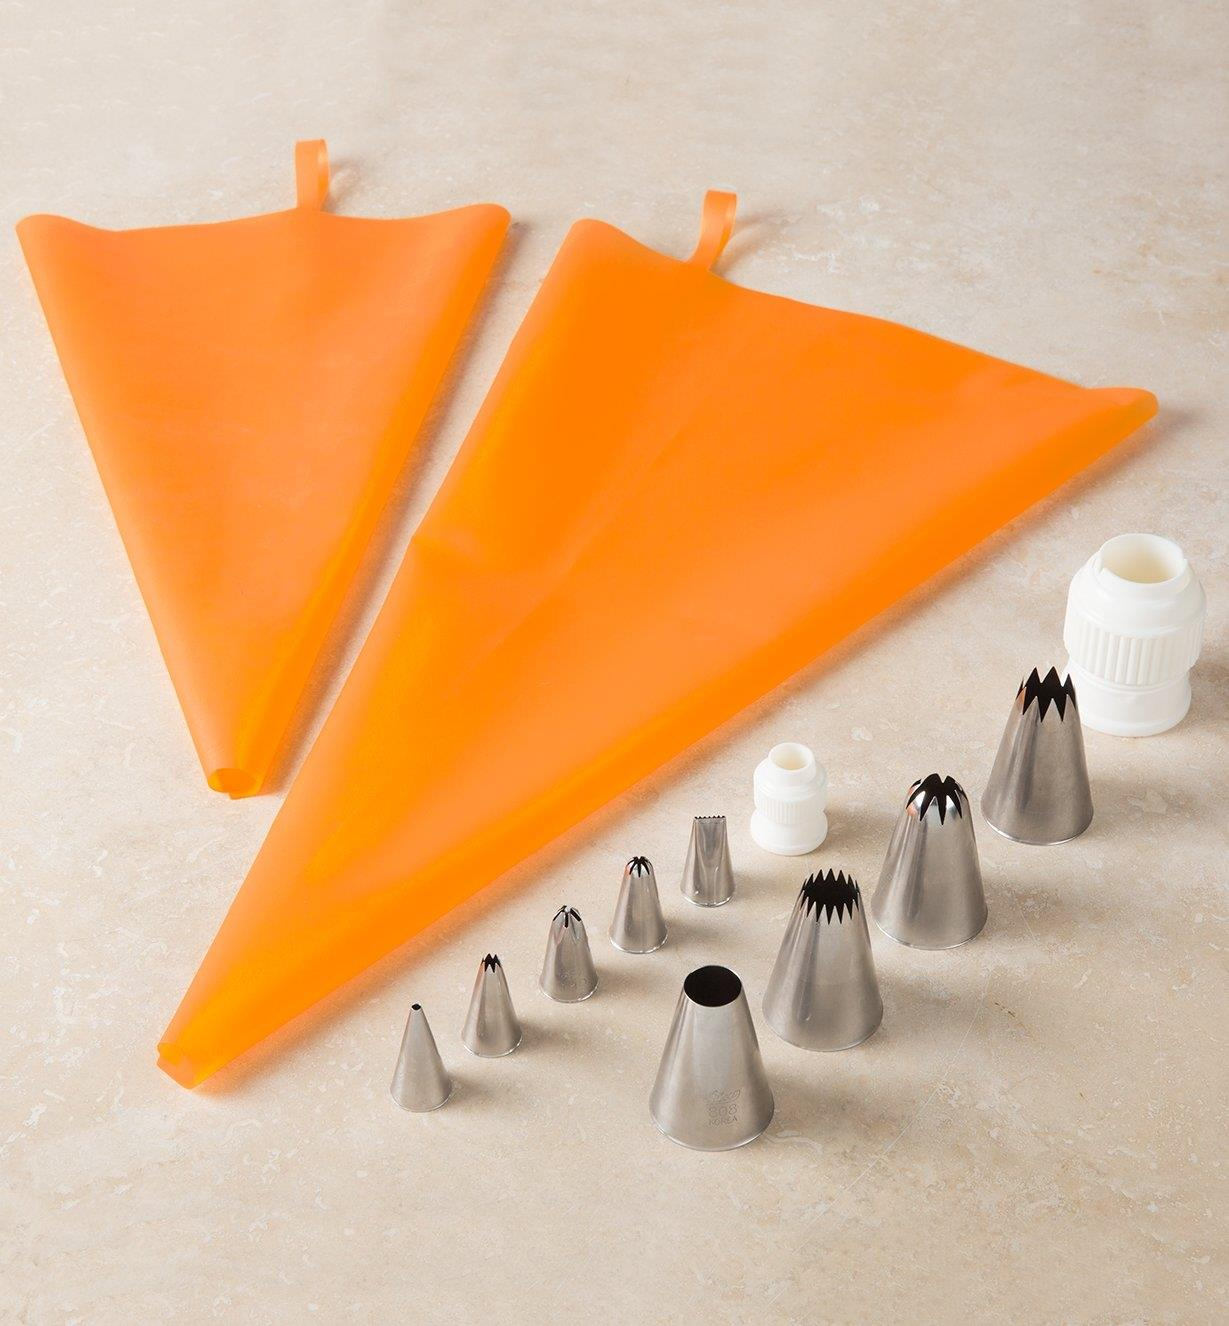 Silicone Piping Bags placed next to a selection of decorating tips and couplers